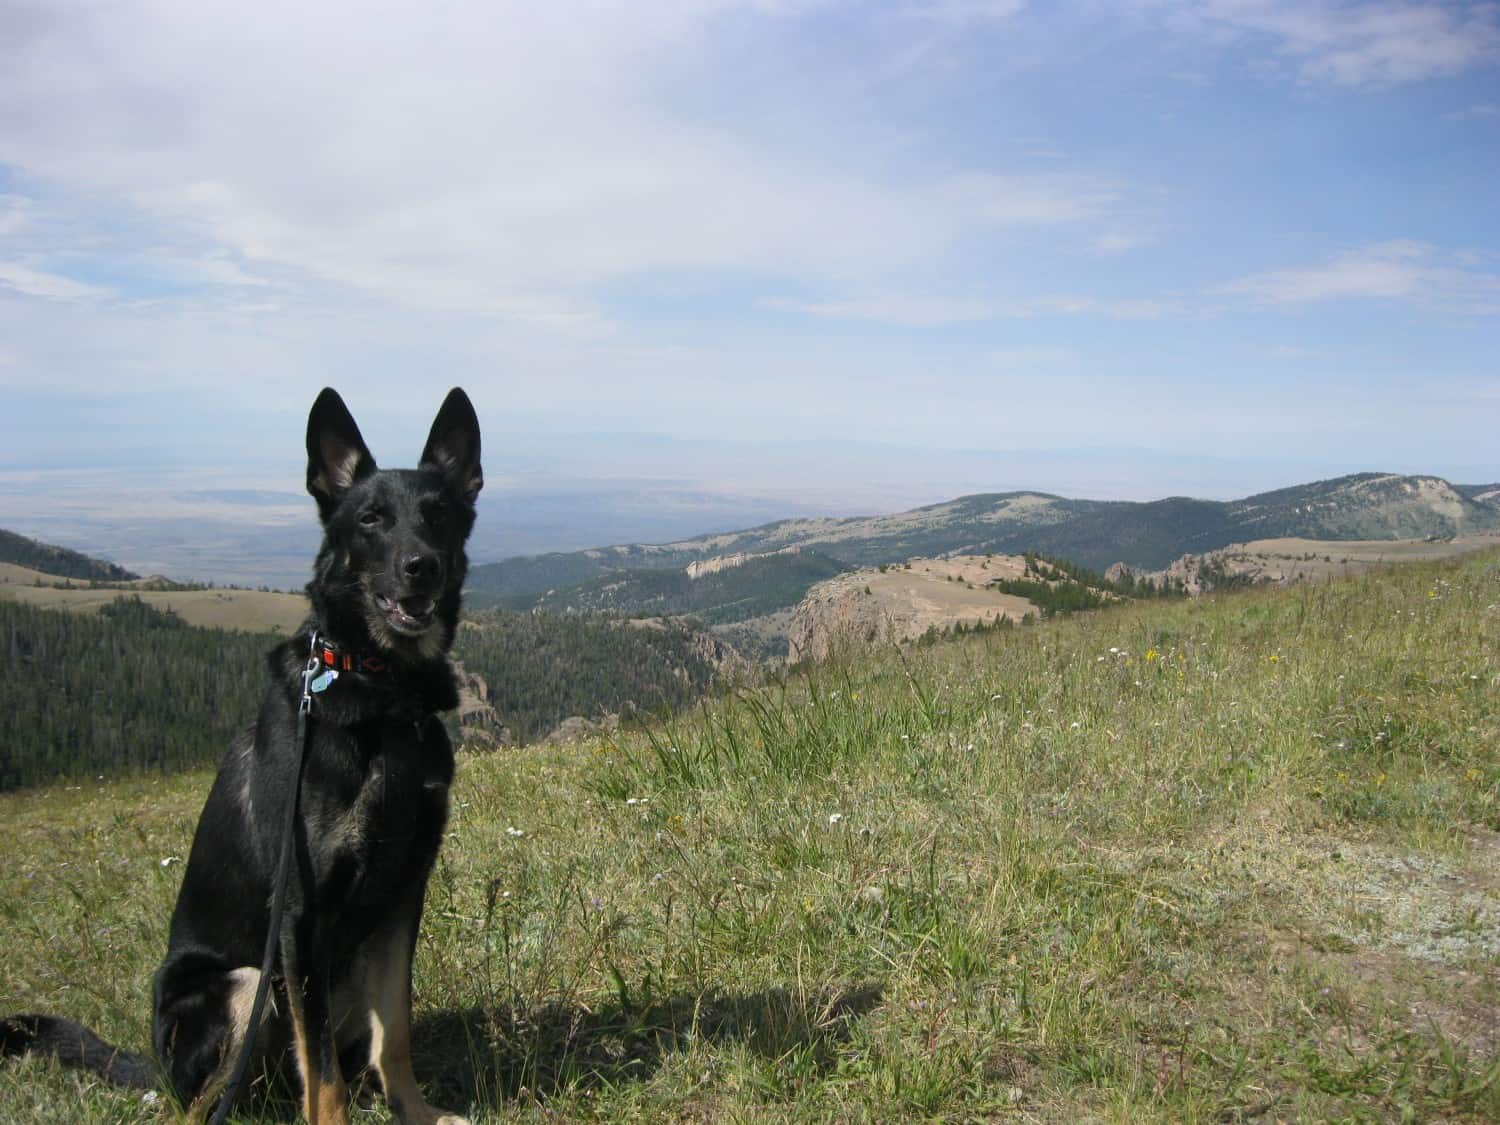 Pet dog in the Bighorn National Forest near Yellowstone National Park